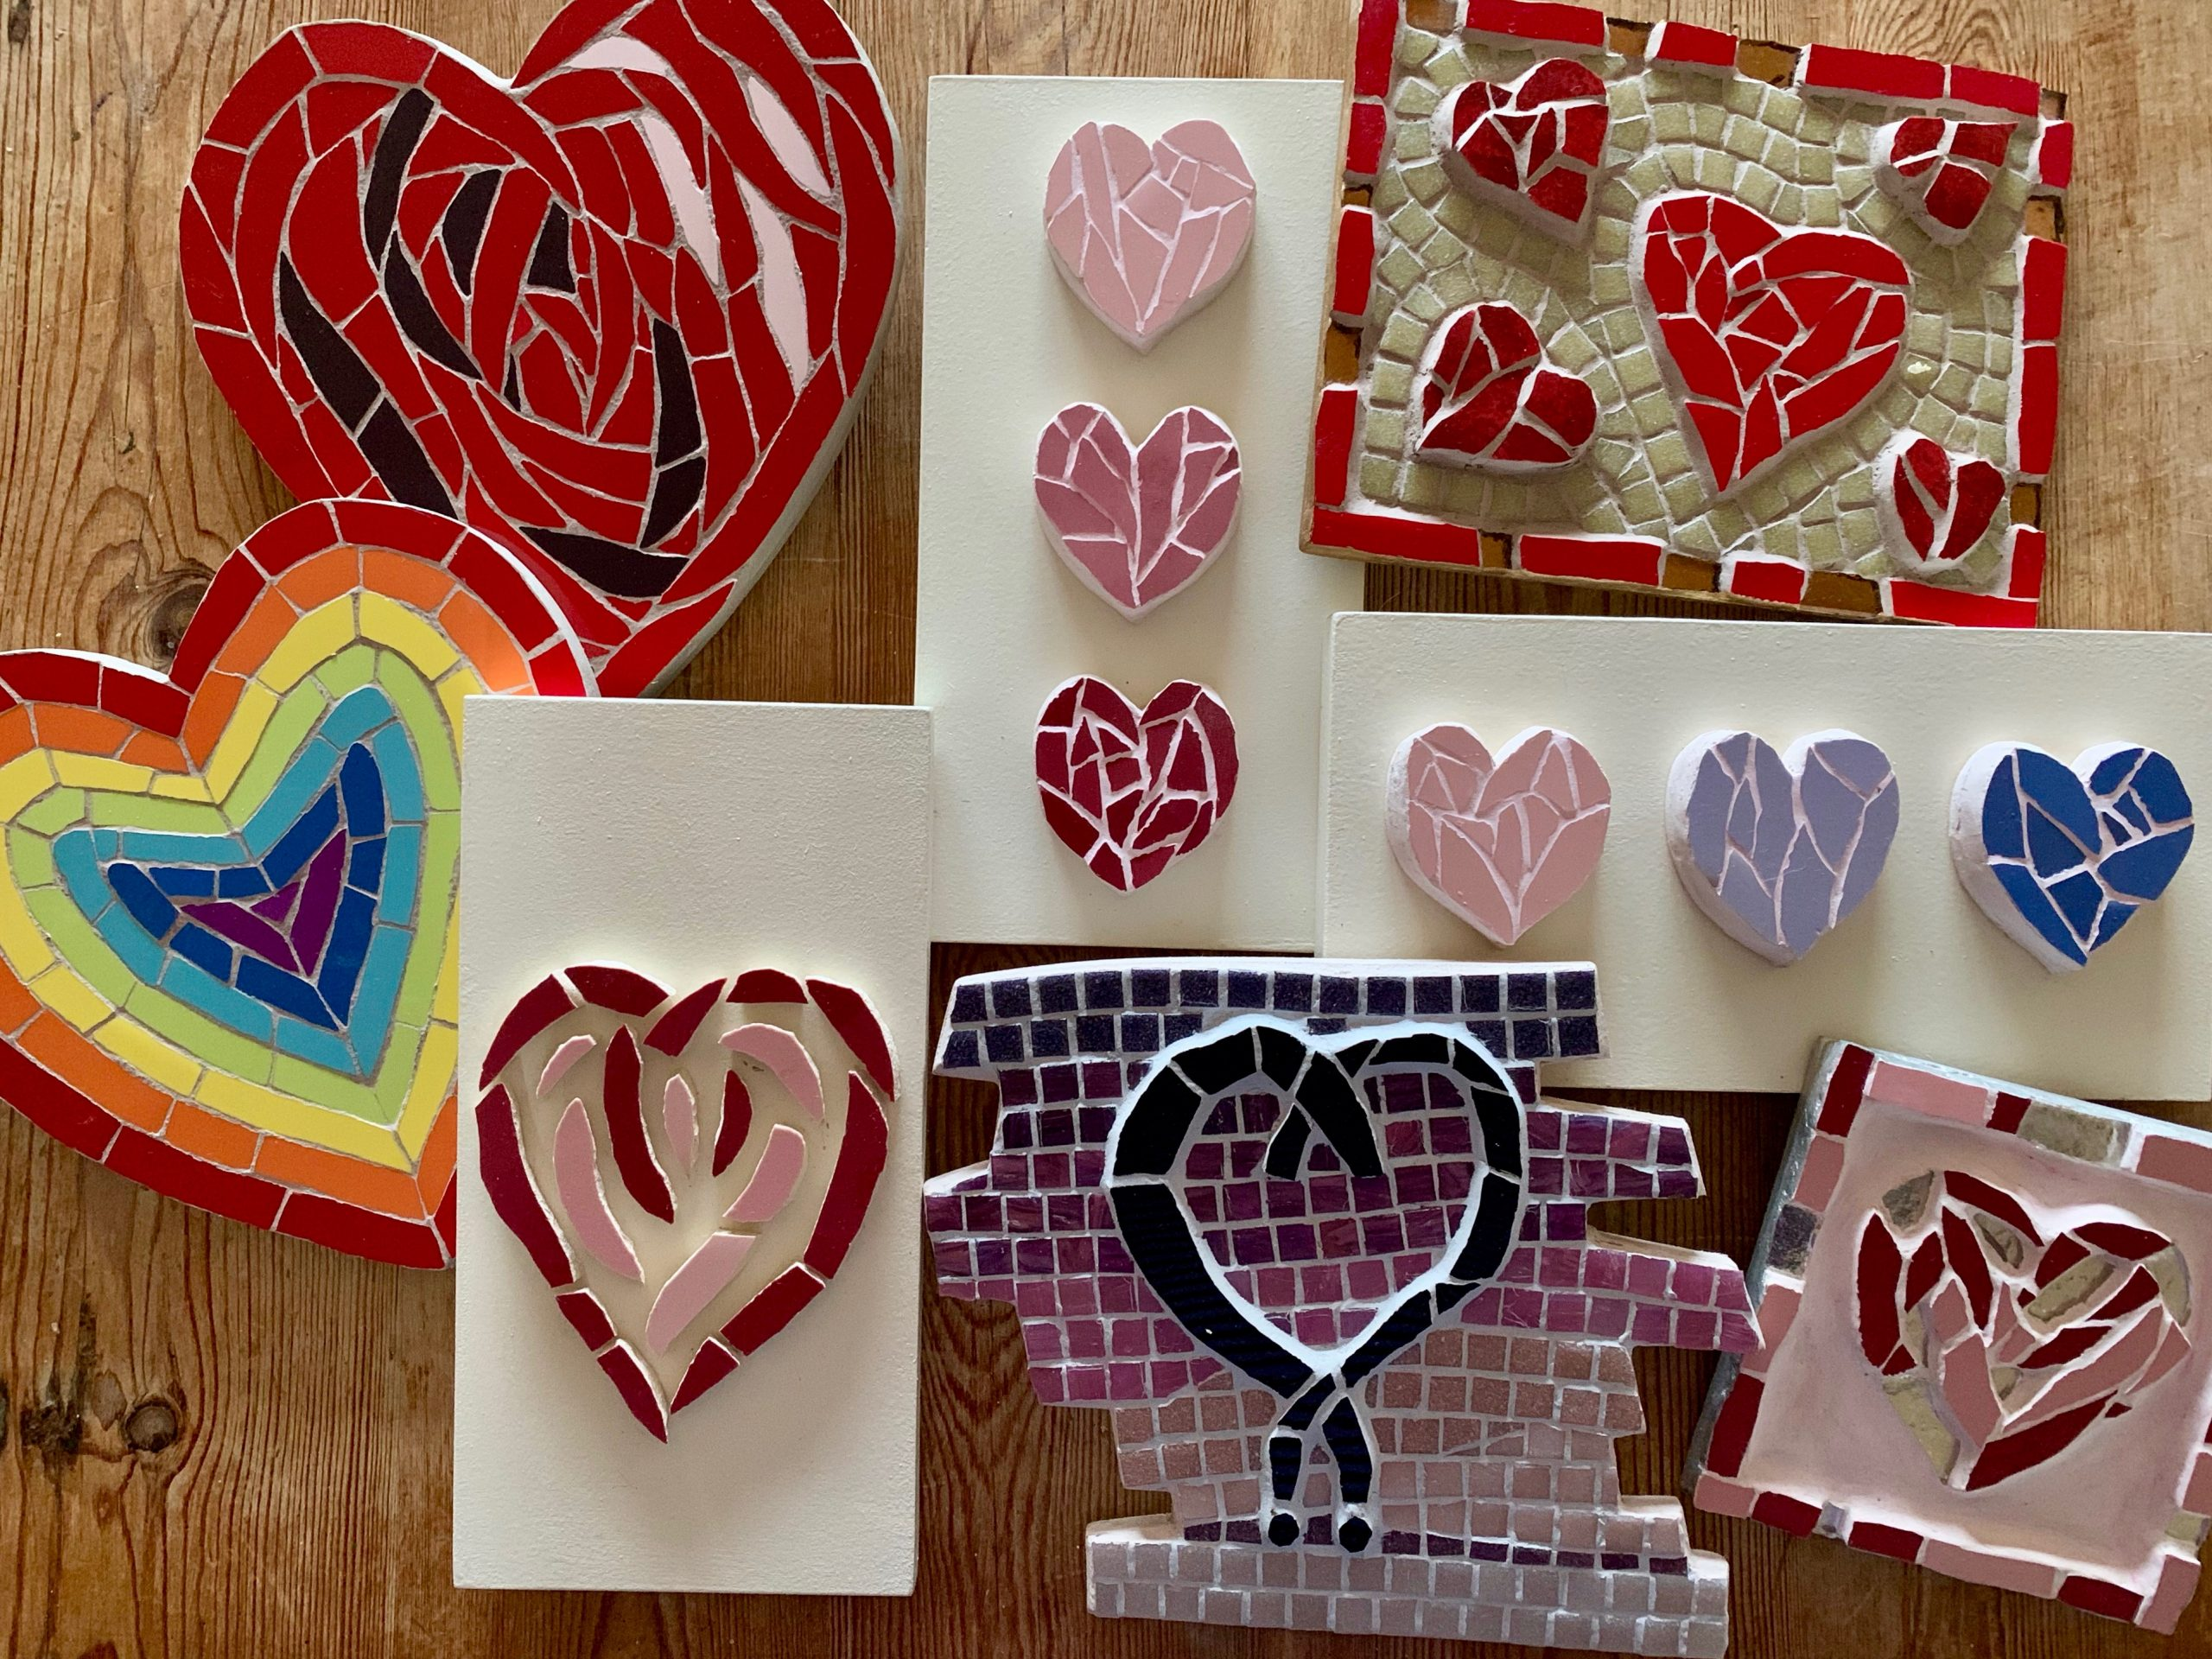 Visit my newly updated online mosaic shop!